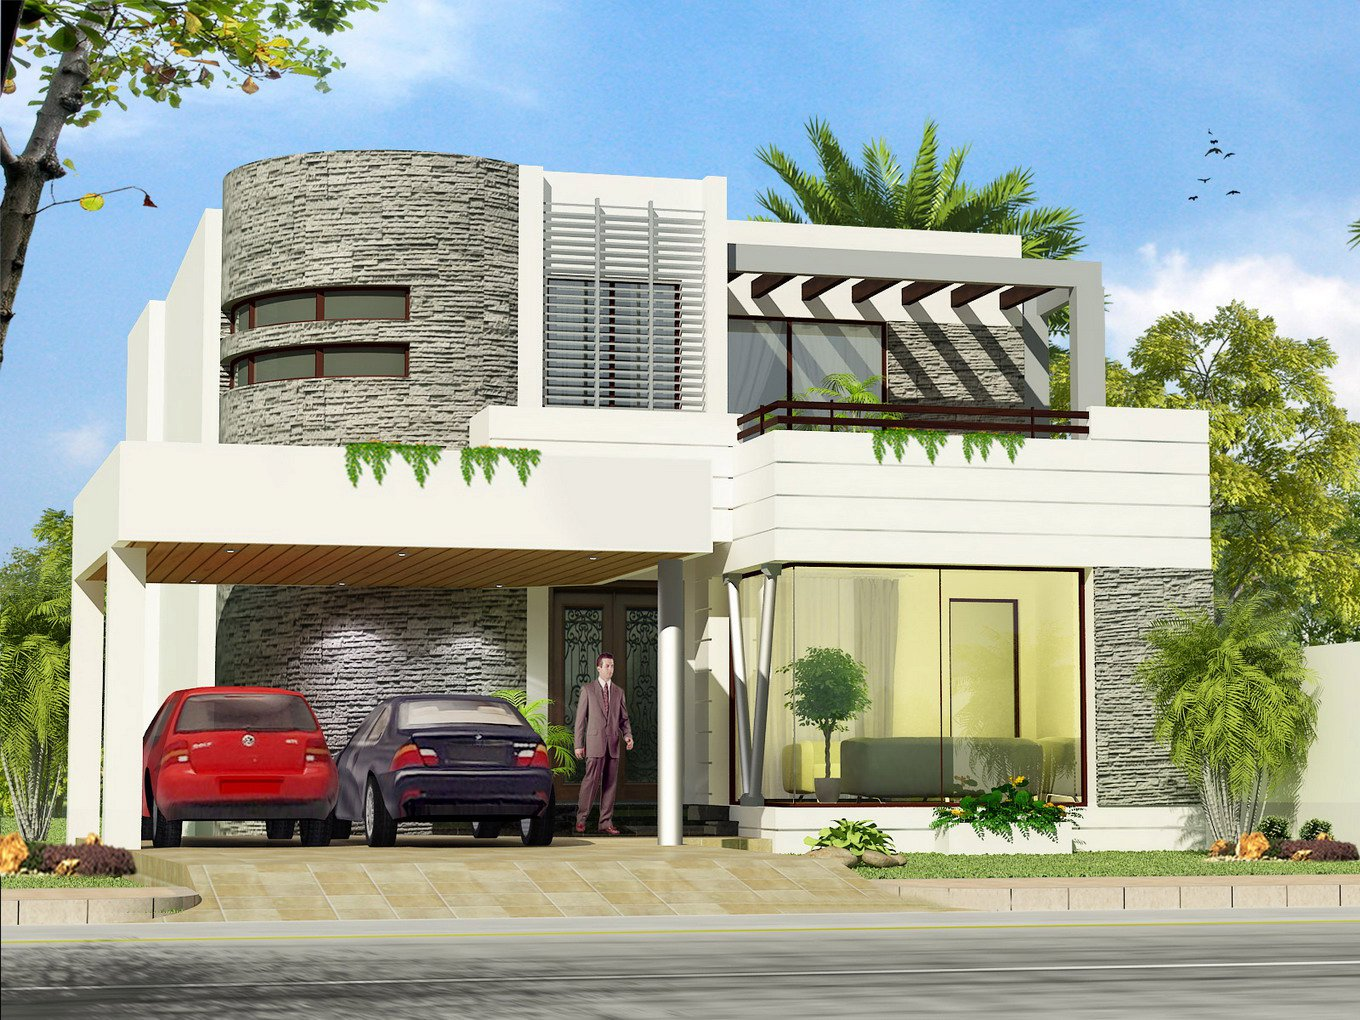 New home designs latest modern homes beautiful latest exterior homes designs Stunning modern home exterior designs